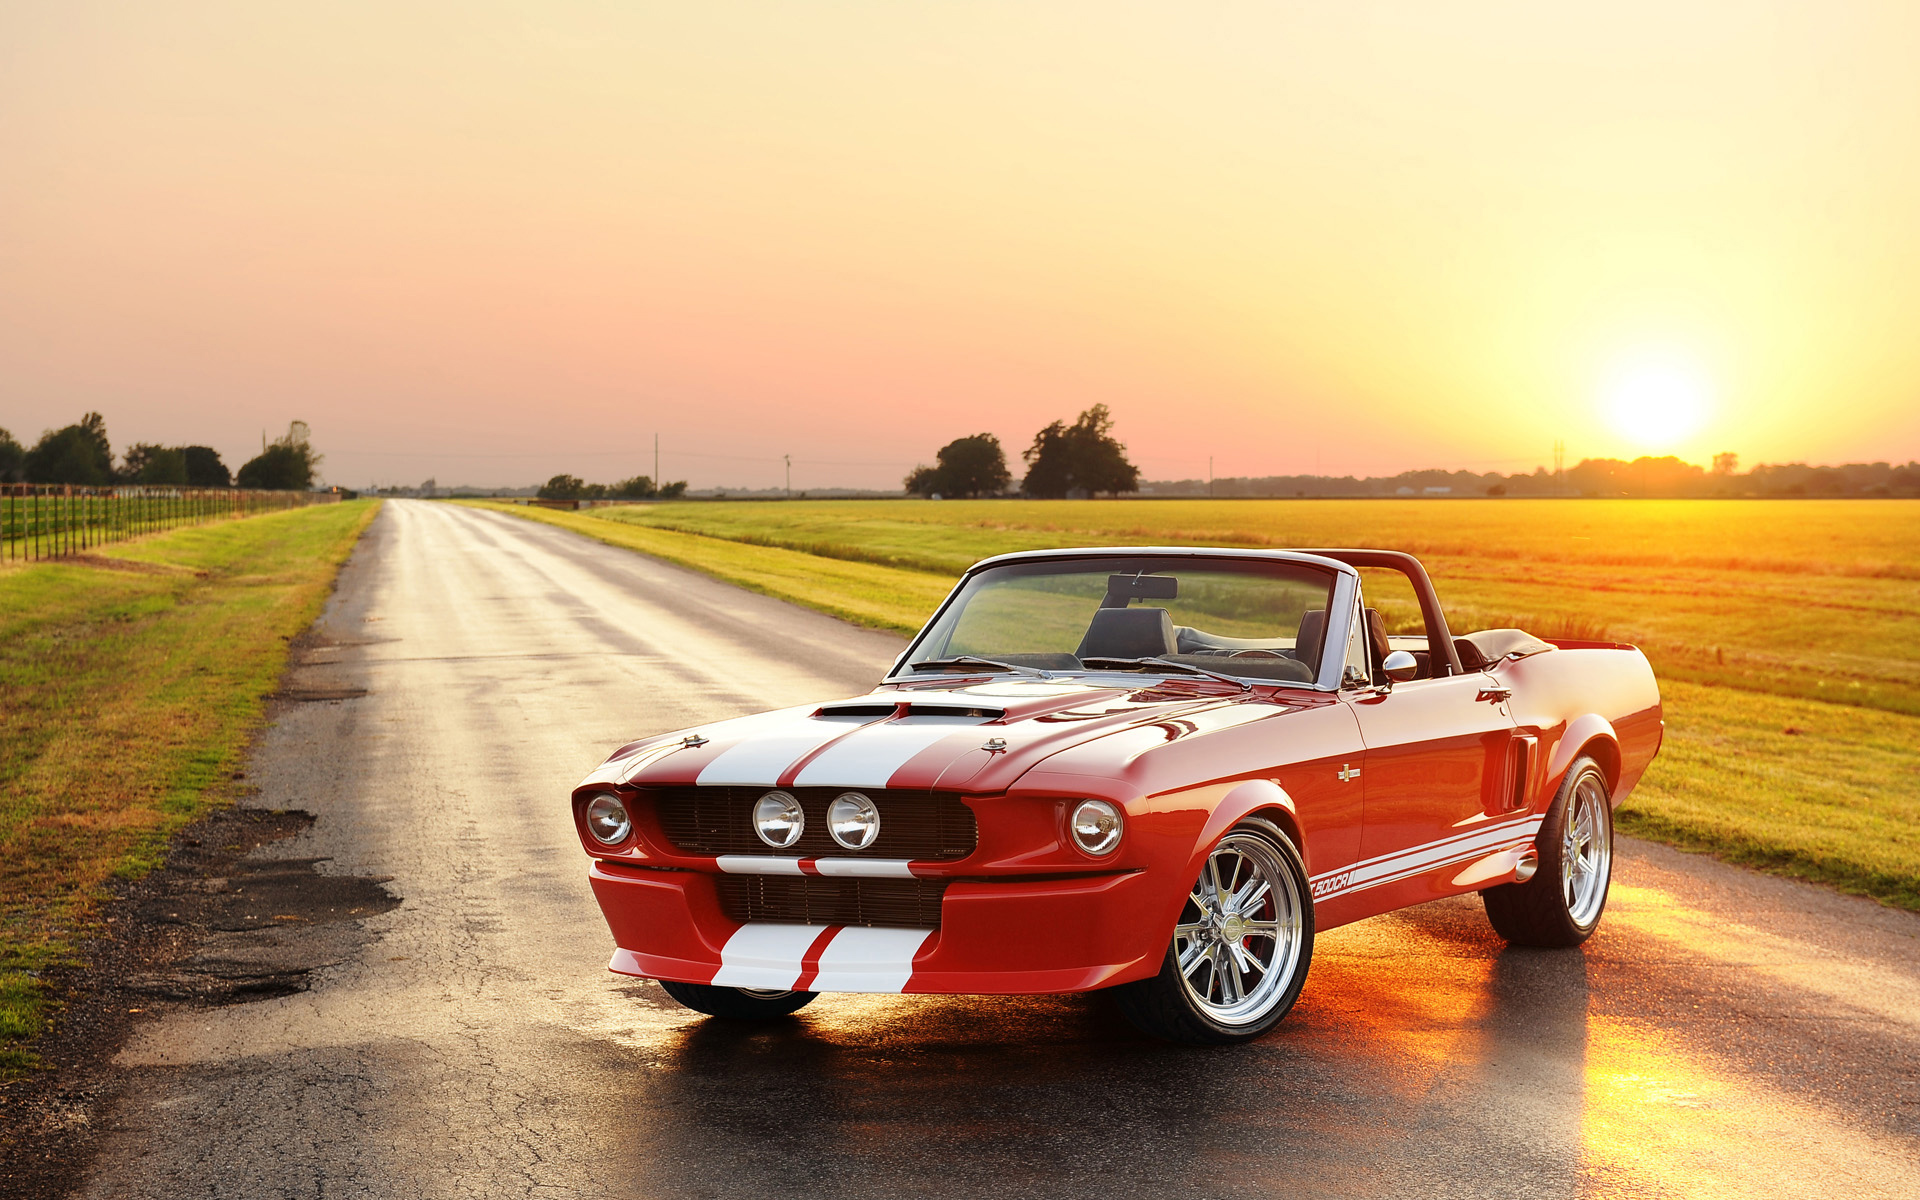 Ford Mustang Shelby GT500 67 Red Sunset Wallpaper Car Wallpaper 1920x1200